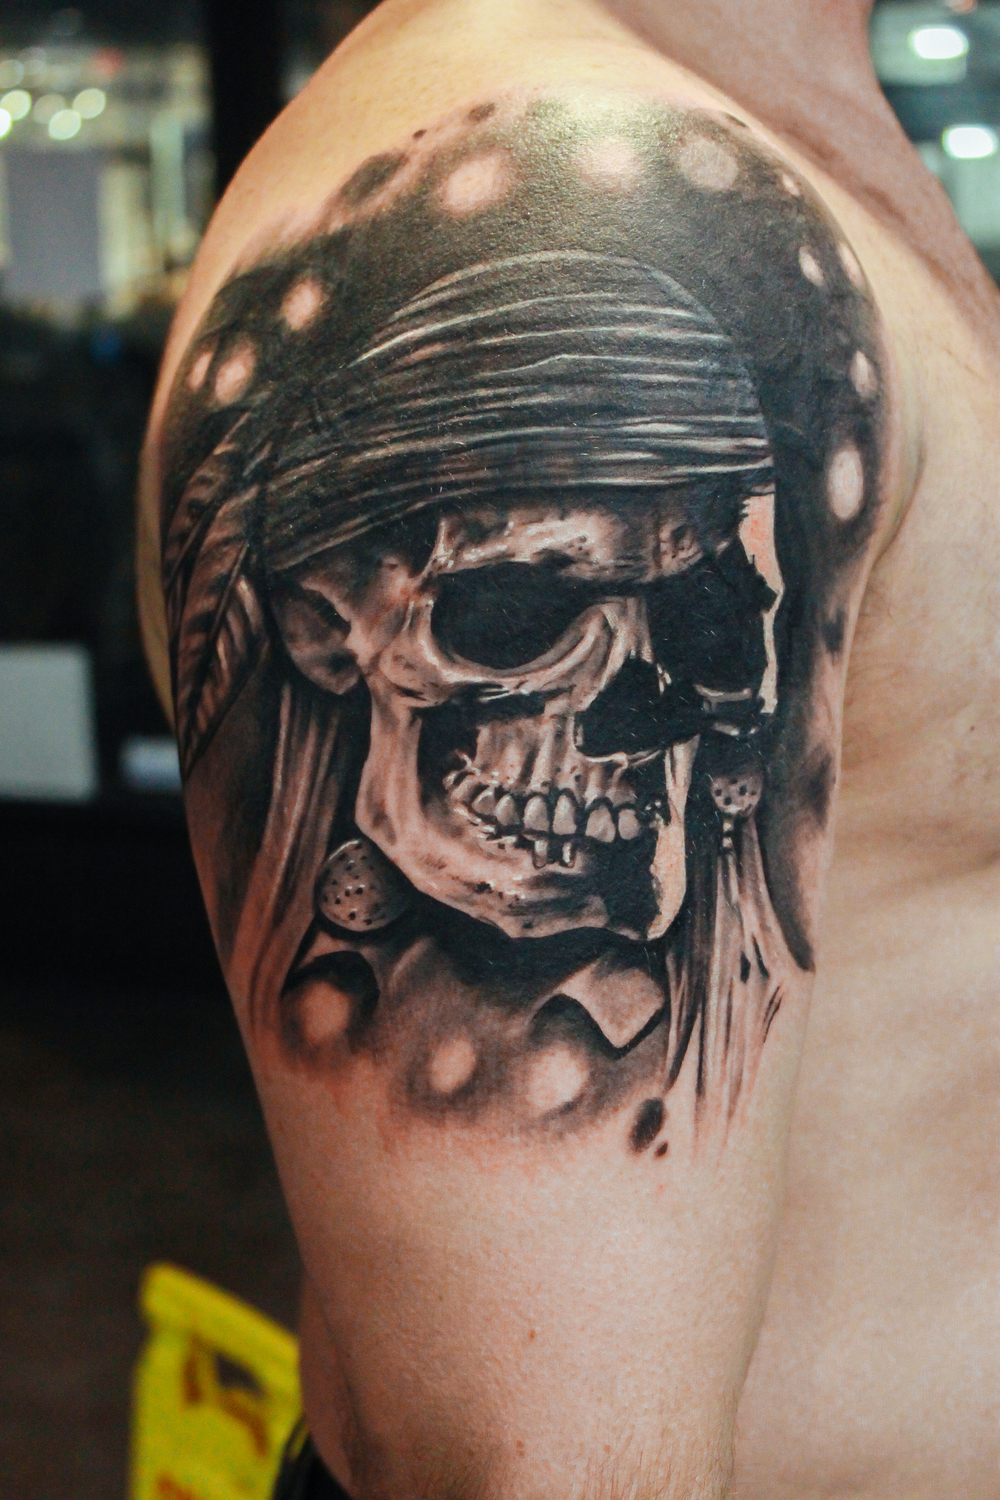 scoot-pirate-skull-tattoo-cover-up.jpg